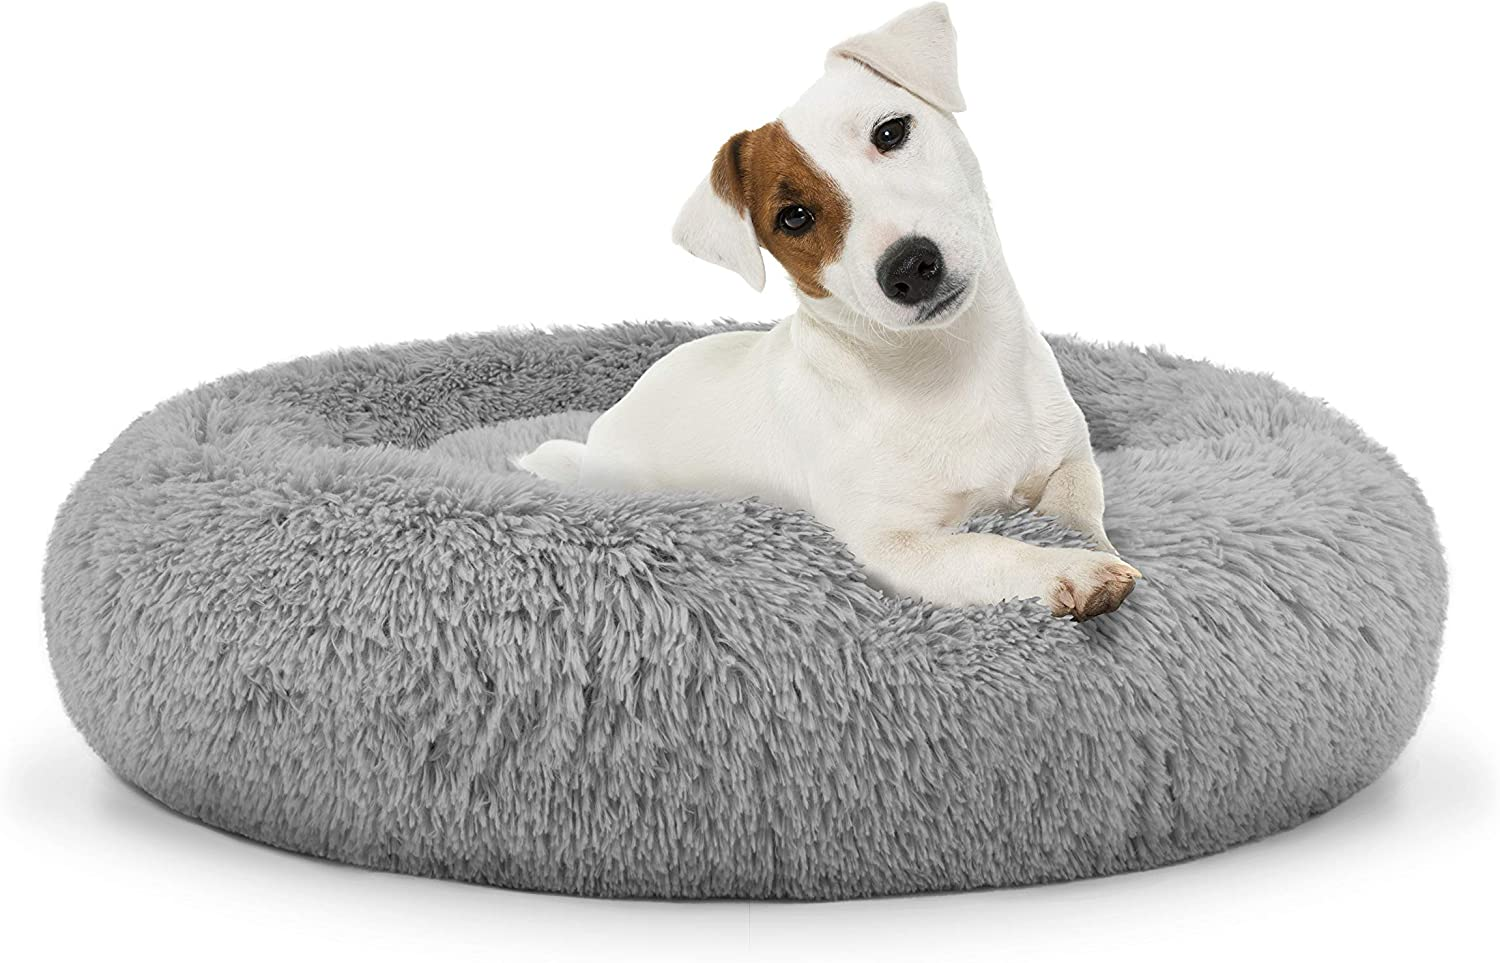 Boston Mall The Dog's Bed Sound Sleep Donut R Dog Med Grey Silver Plush High material